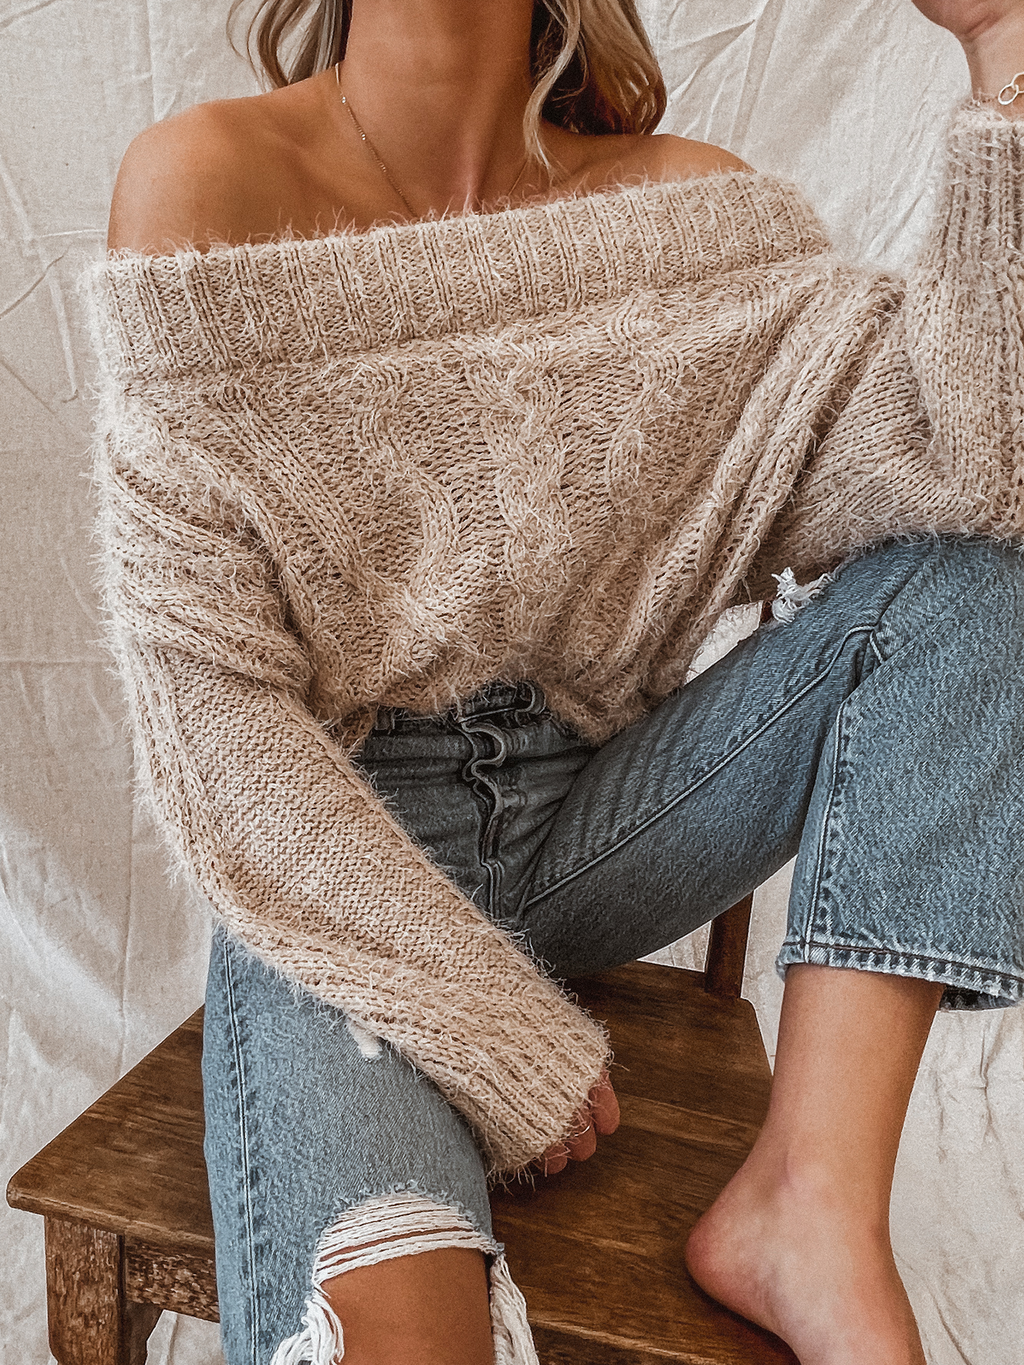 Tiramisu Knit Sweater - Stitch And Feather